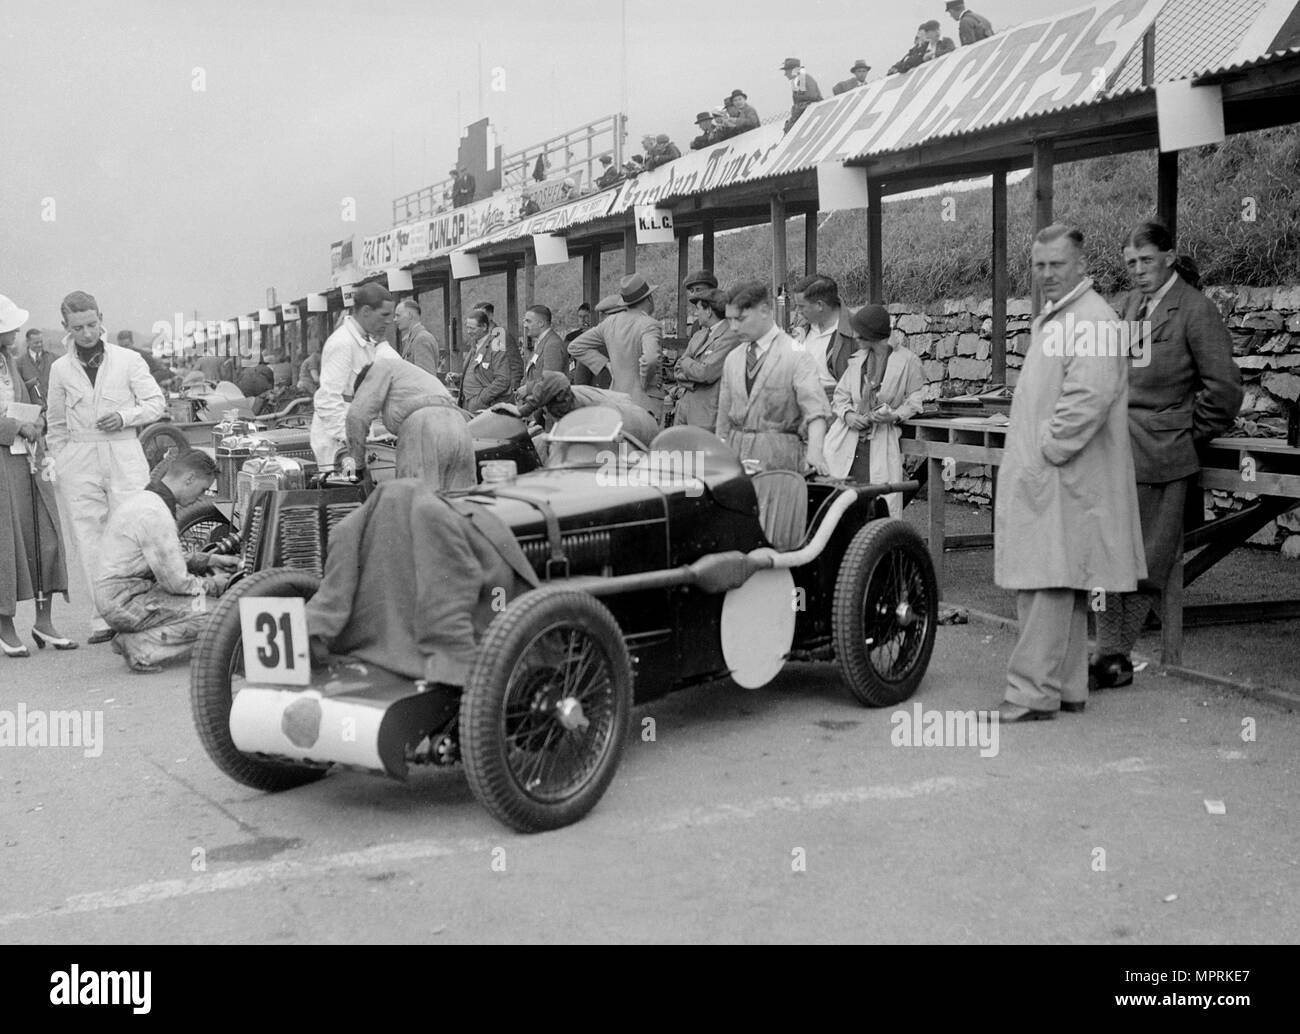 MG C type Midget of Cyril Paul in the pits at the RAC TT Race, Ards Circuit, Belfast, 1932. Artist: Bill Brunell. - Stock Image